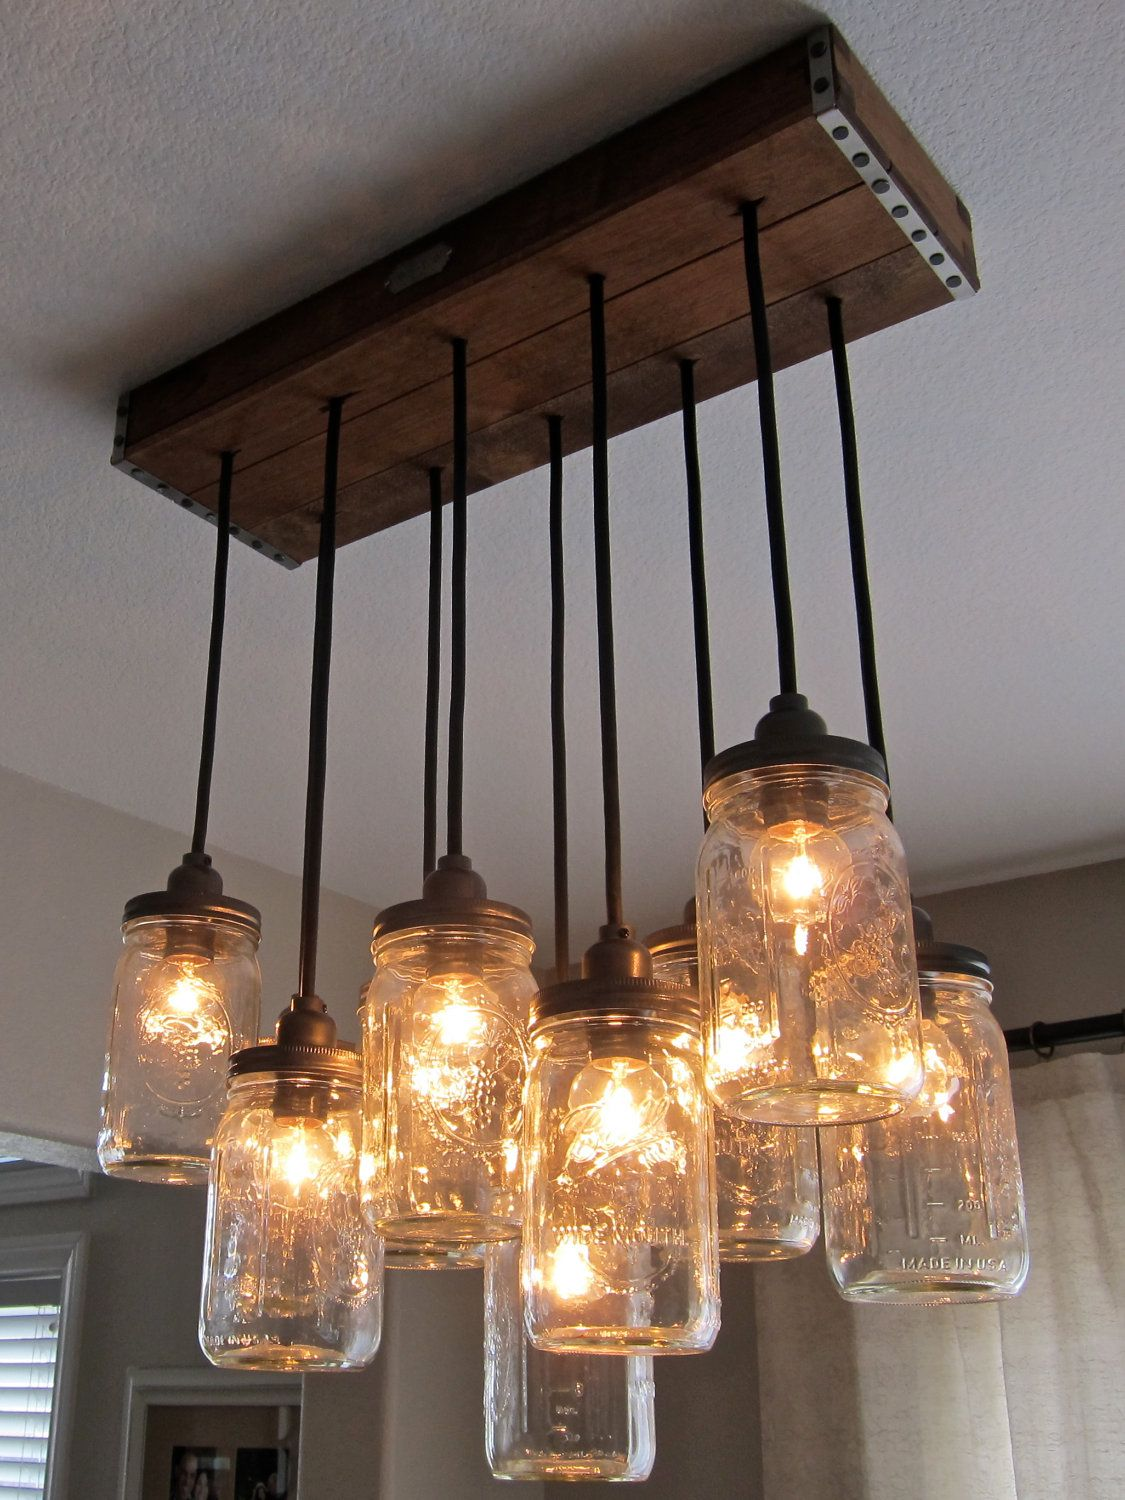 Kenneth lighting fixture for kitchen diy pinterest chandeliers want to know how to make a mason jar chandelier mason jar crafts are fun to make if you want a mason jar lights project this tutorial is for you arubaitofo Gallery